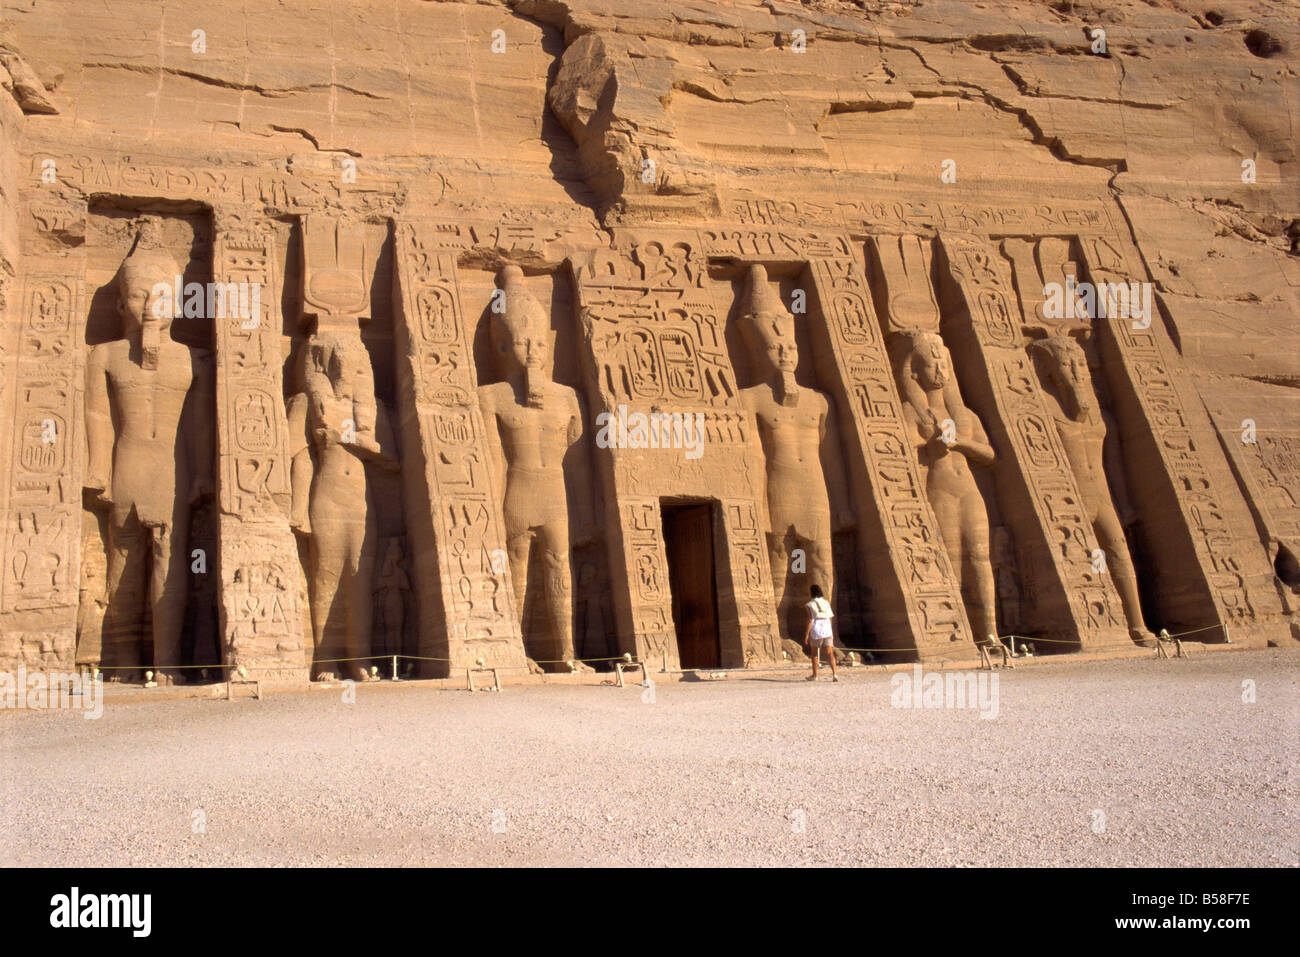 Temple of Hathor in honour of Nefertari, moved when the Aswan High Dam was built, Abu Simbel, Nubia, Egypt - Stock Image